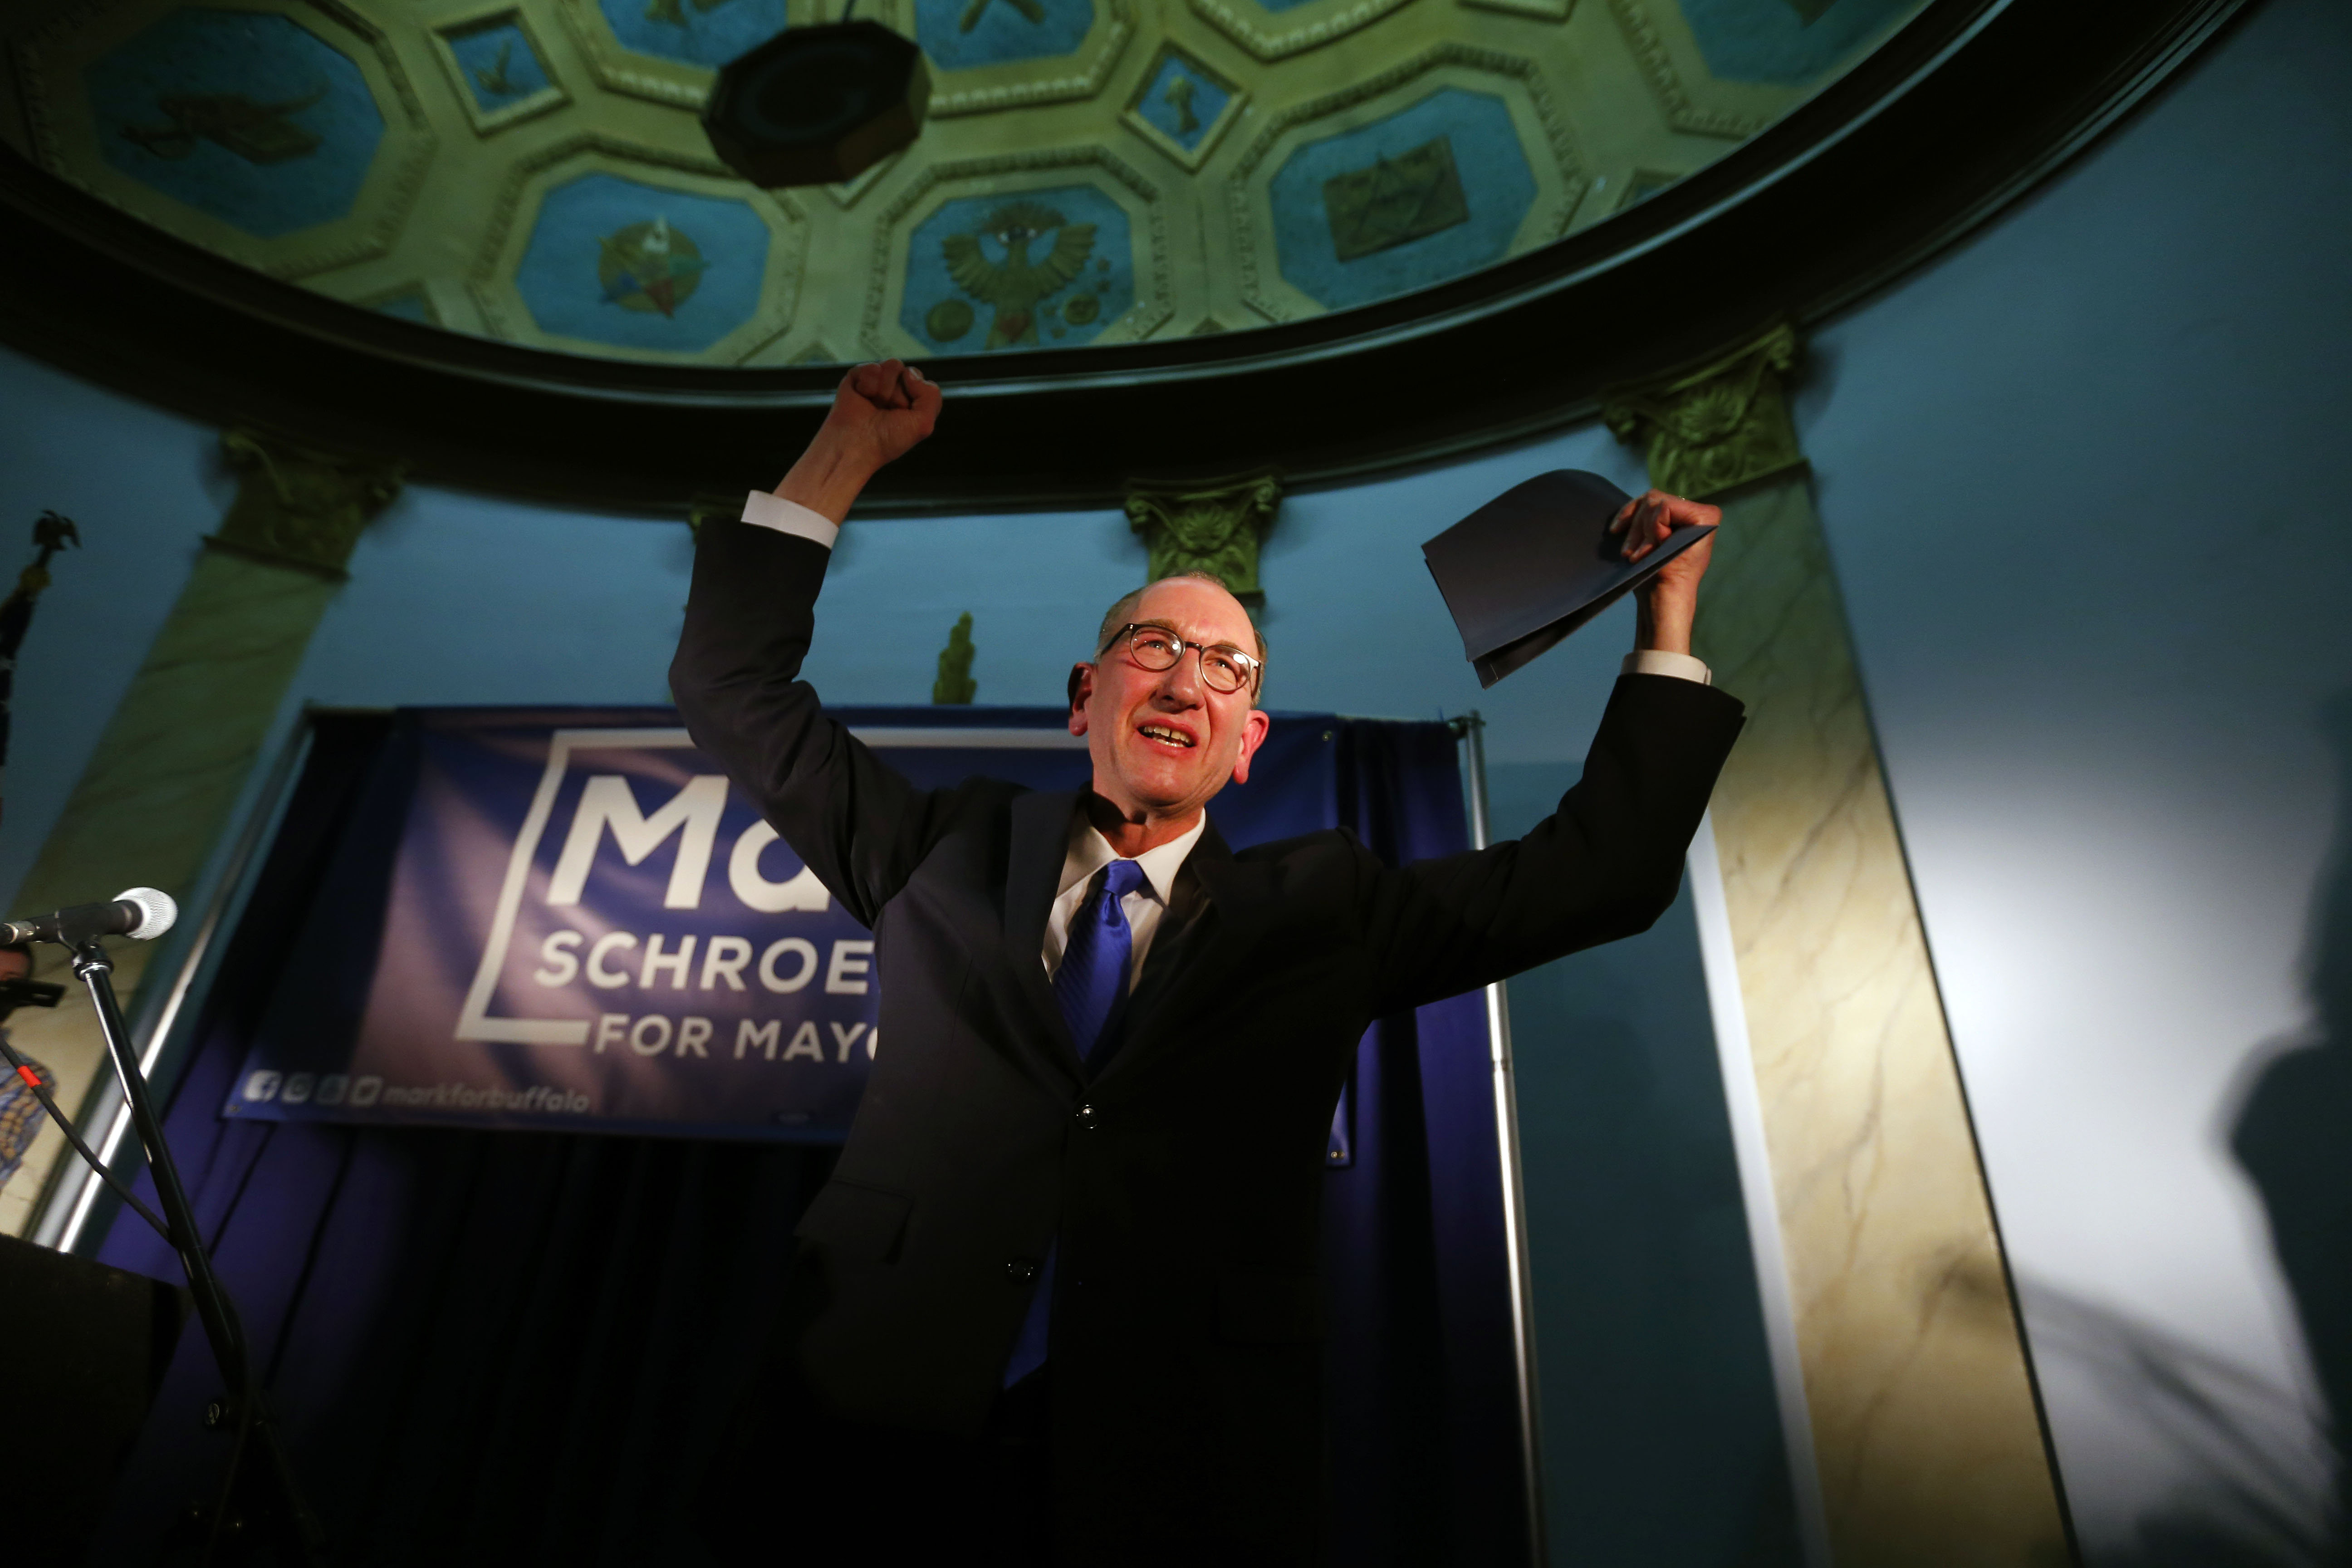 Mark Schroeder officially announces his candidacy for mayor of the city of Buffalo at the Historic Lodge in South Buffalo on Sunday, March 5, 2017.       (Mark Mulville/Buffalo News)